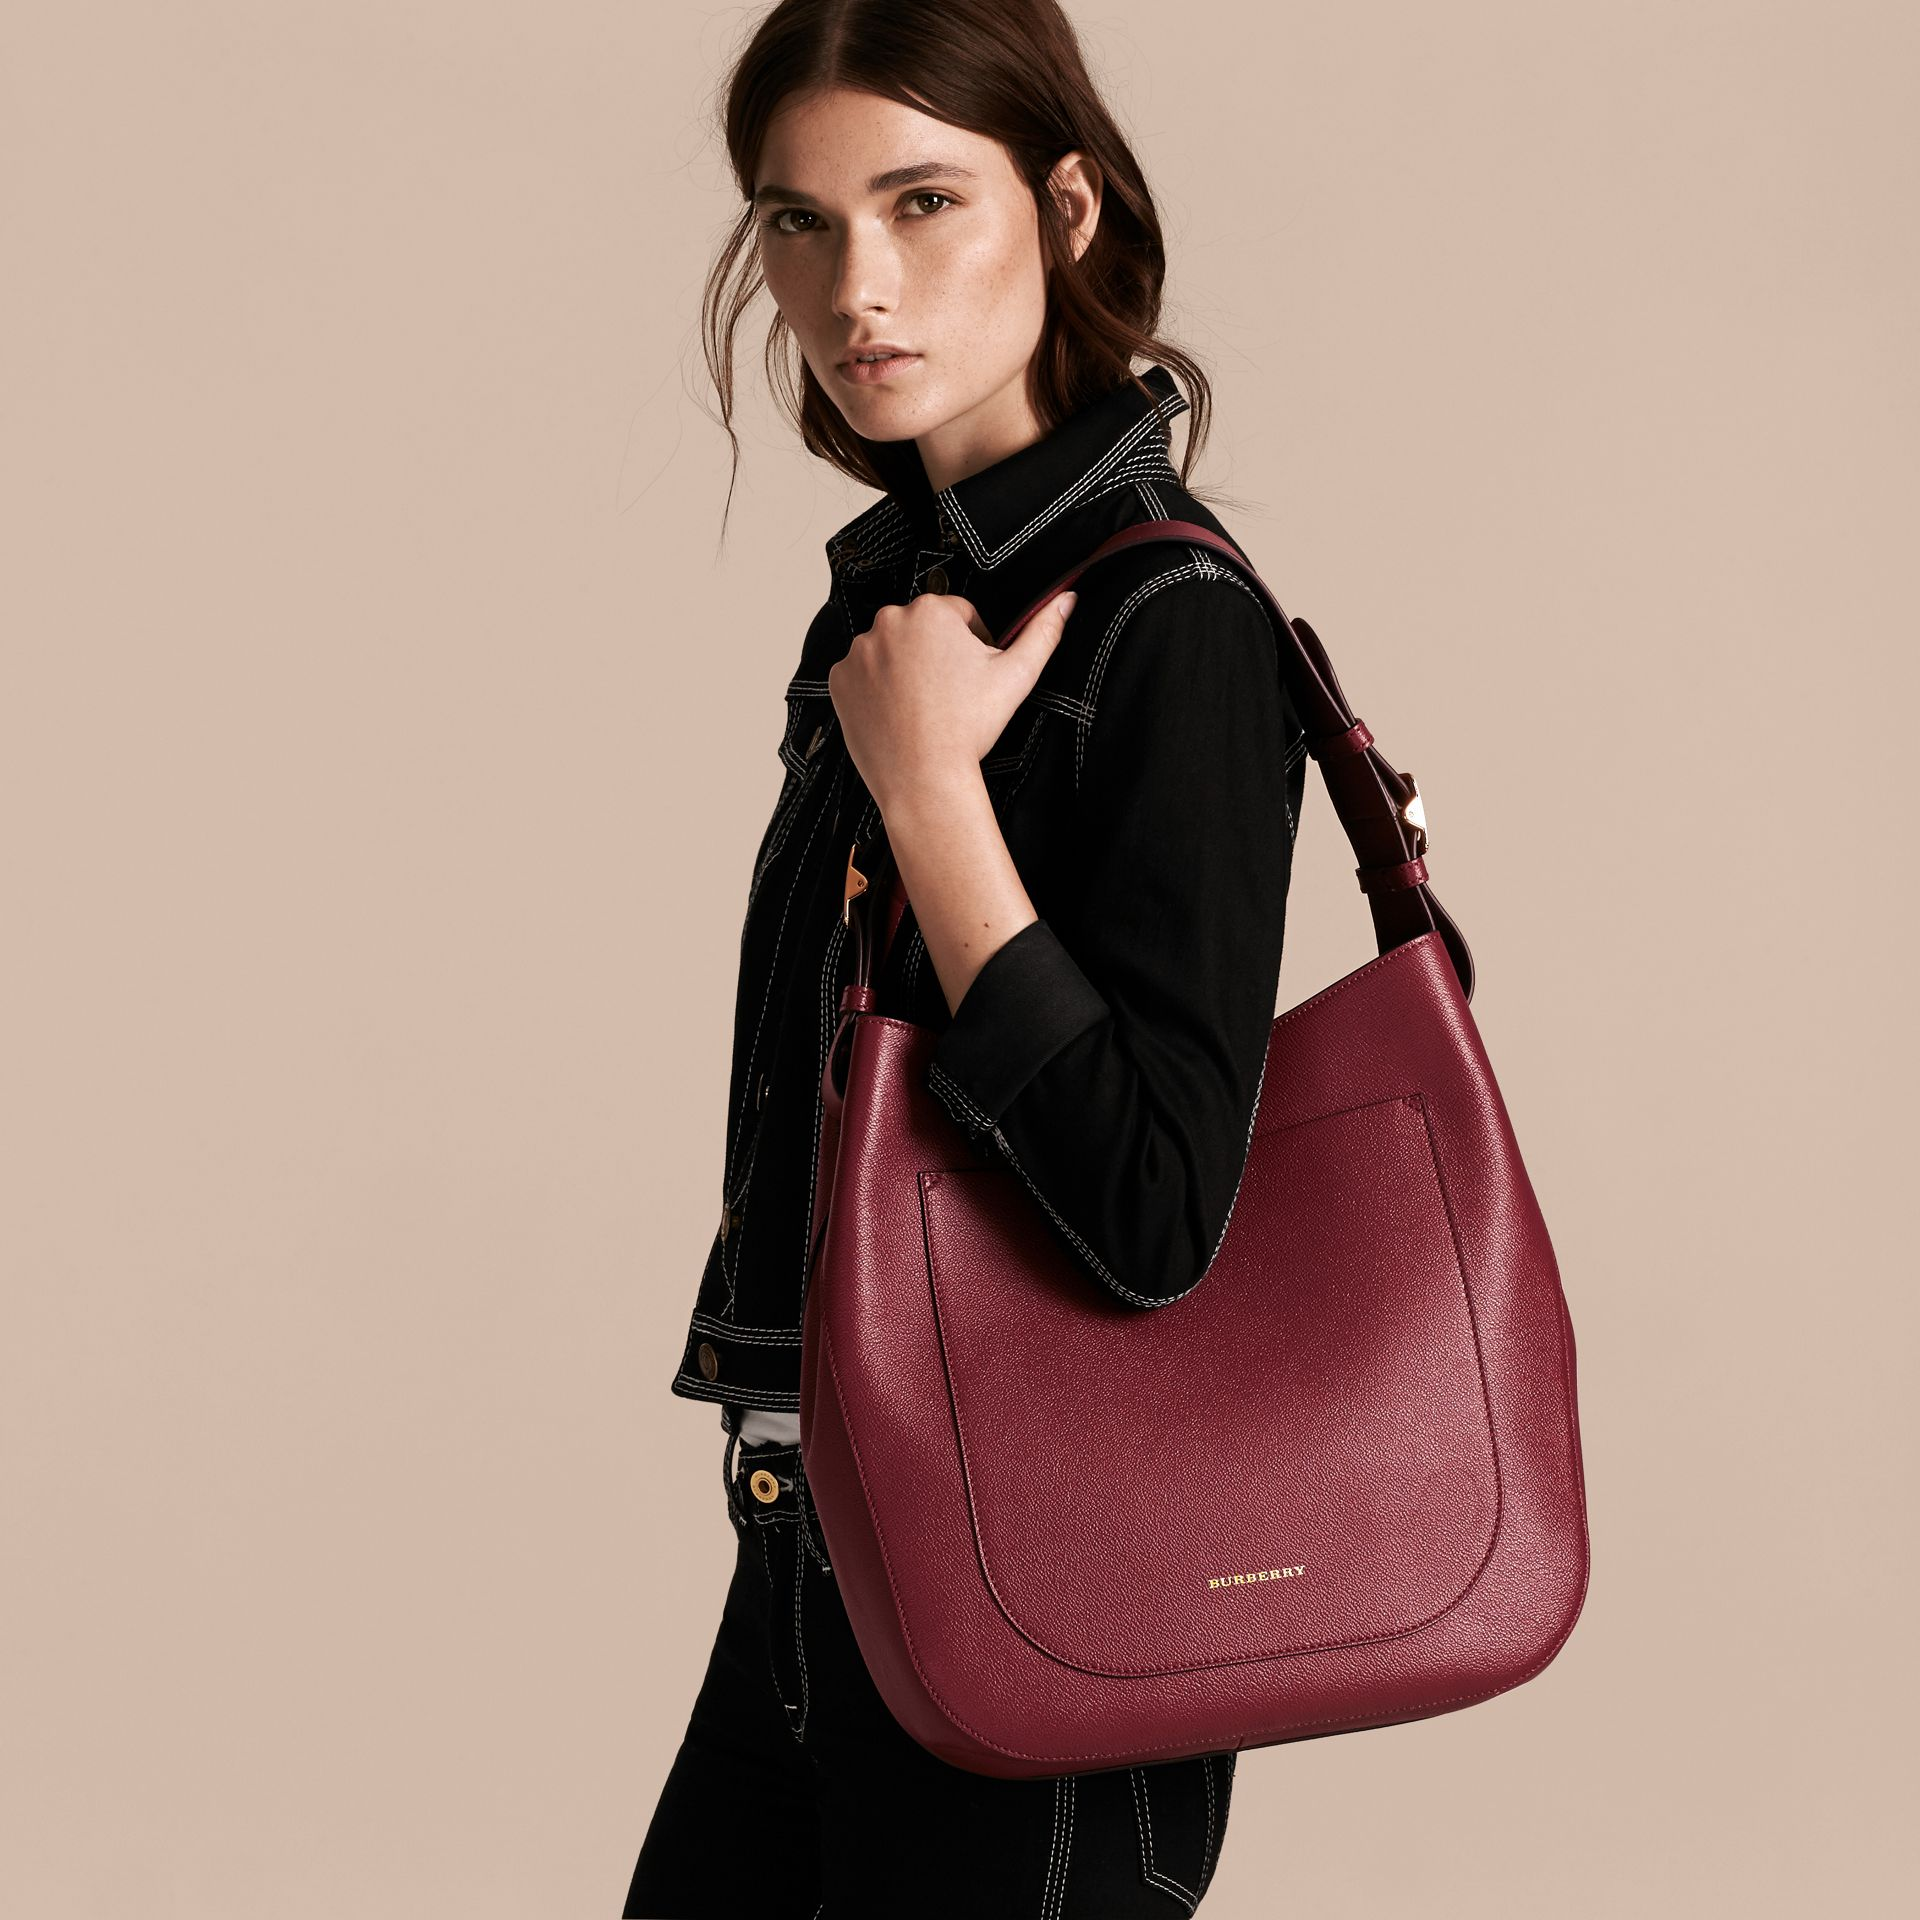 Textured Leather Shoulder Bag in Dark Plum - gallery image 3